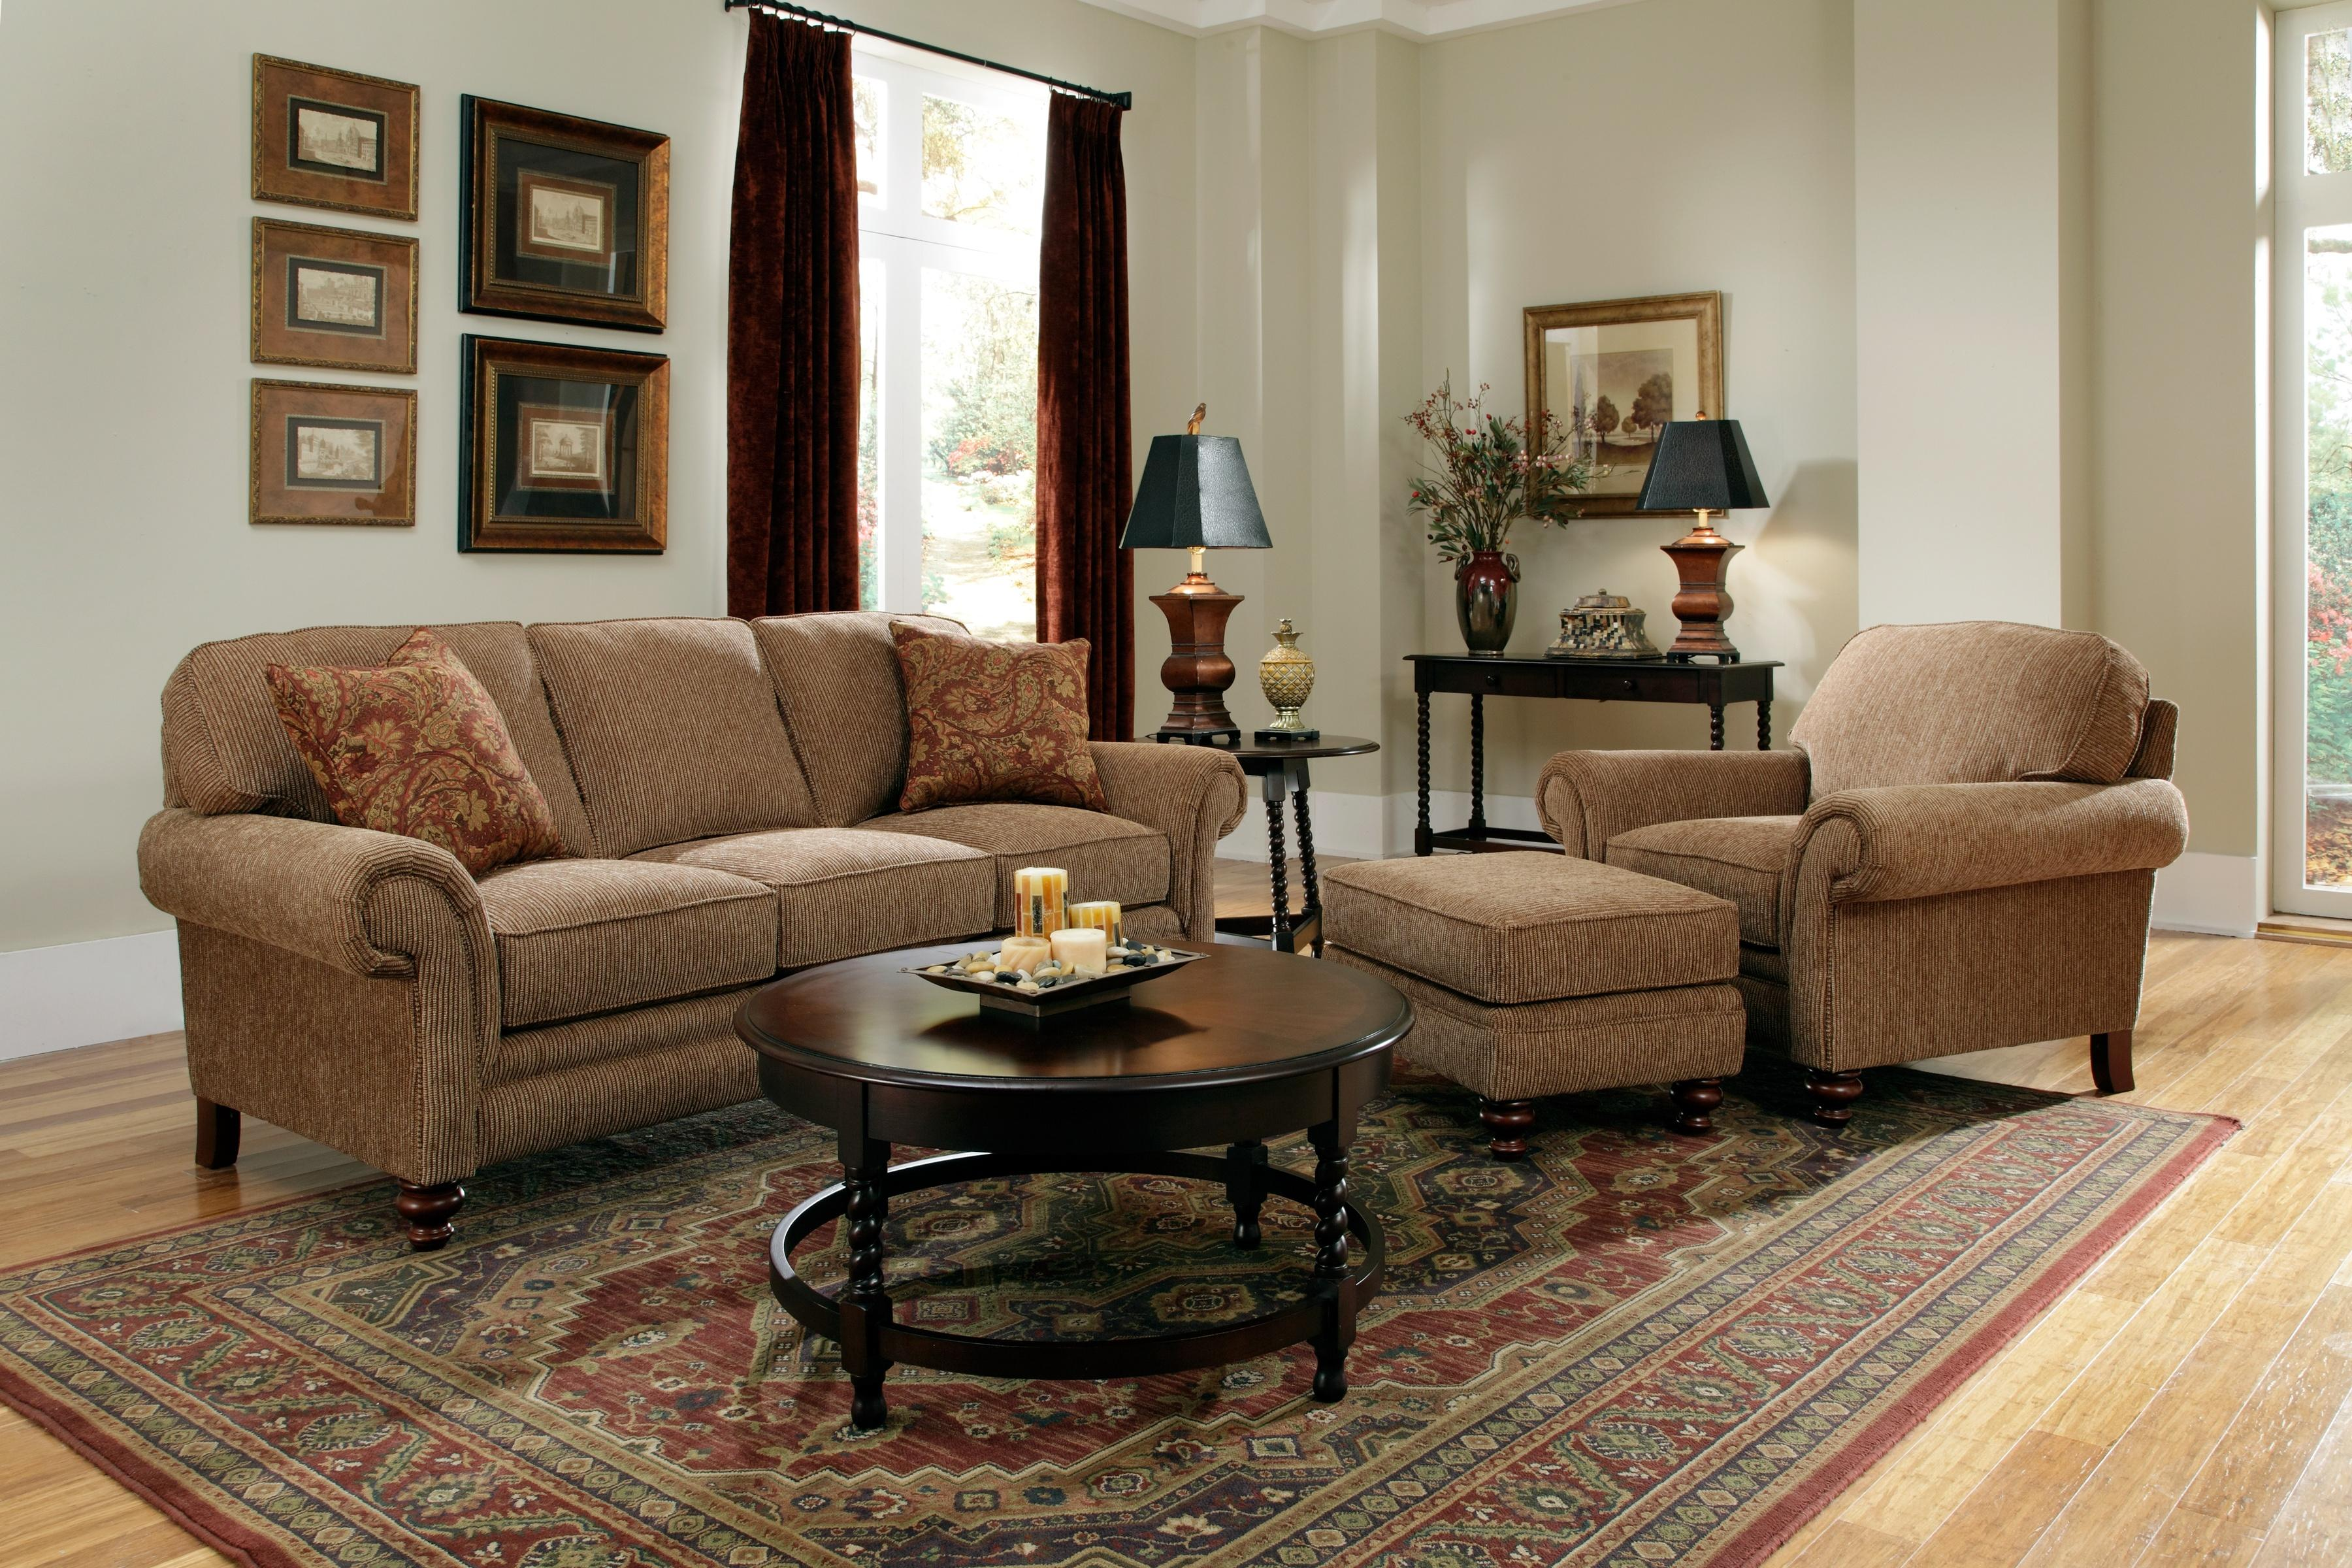 Broyhill Living Chairs Home Decor Photos Gallery